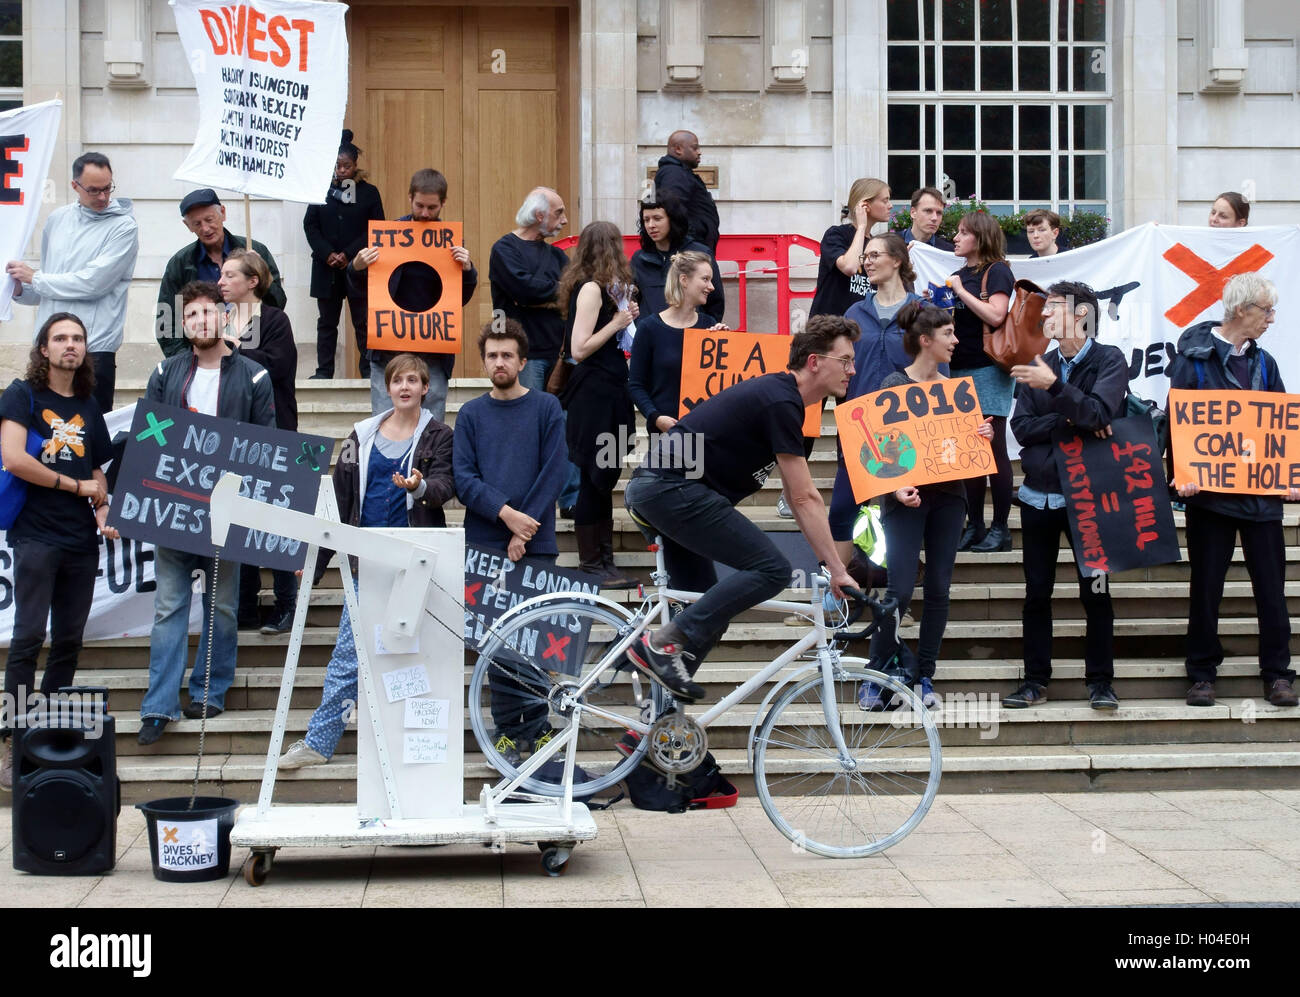 Climate change protesters demonstrate against fossil fuel investment outside Hackney Town Hall, London - Stock Image